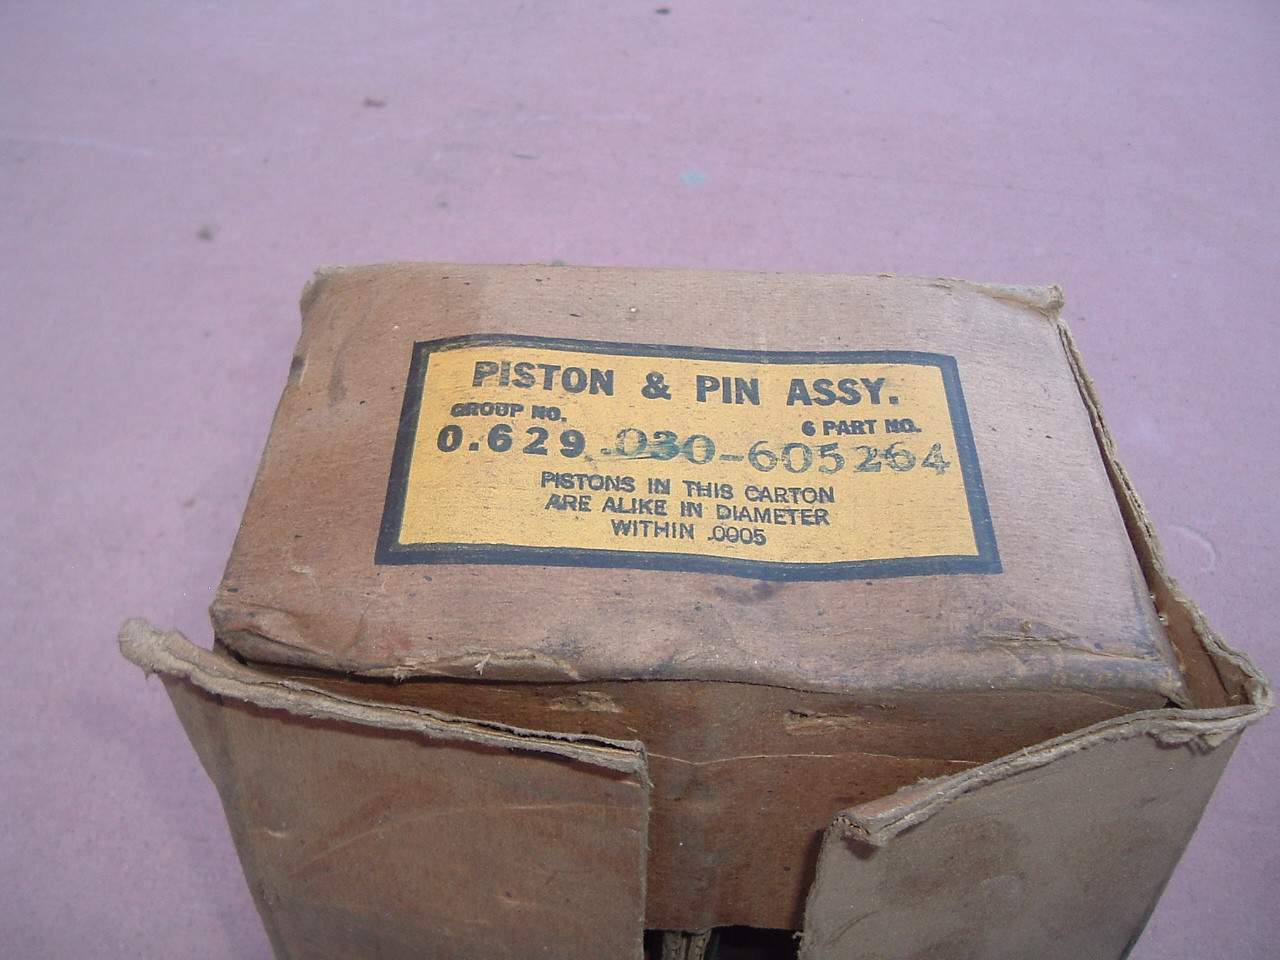 1941 42 46 47 48 49 50 51 52 53 chevrolet 216 engine pistion set nos gm 605264 (z 605264)